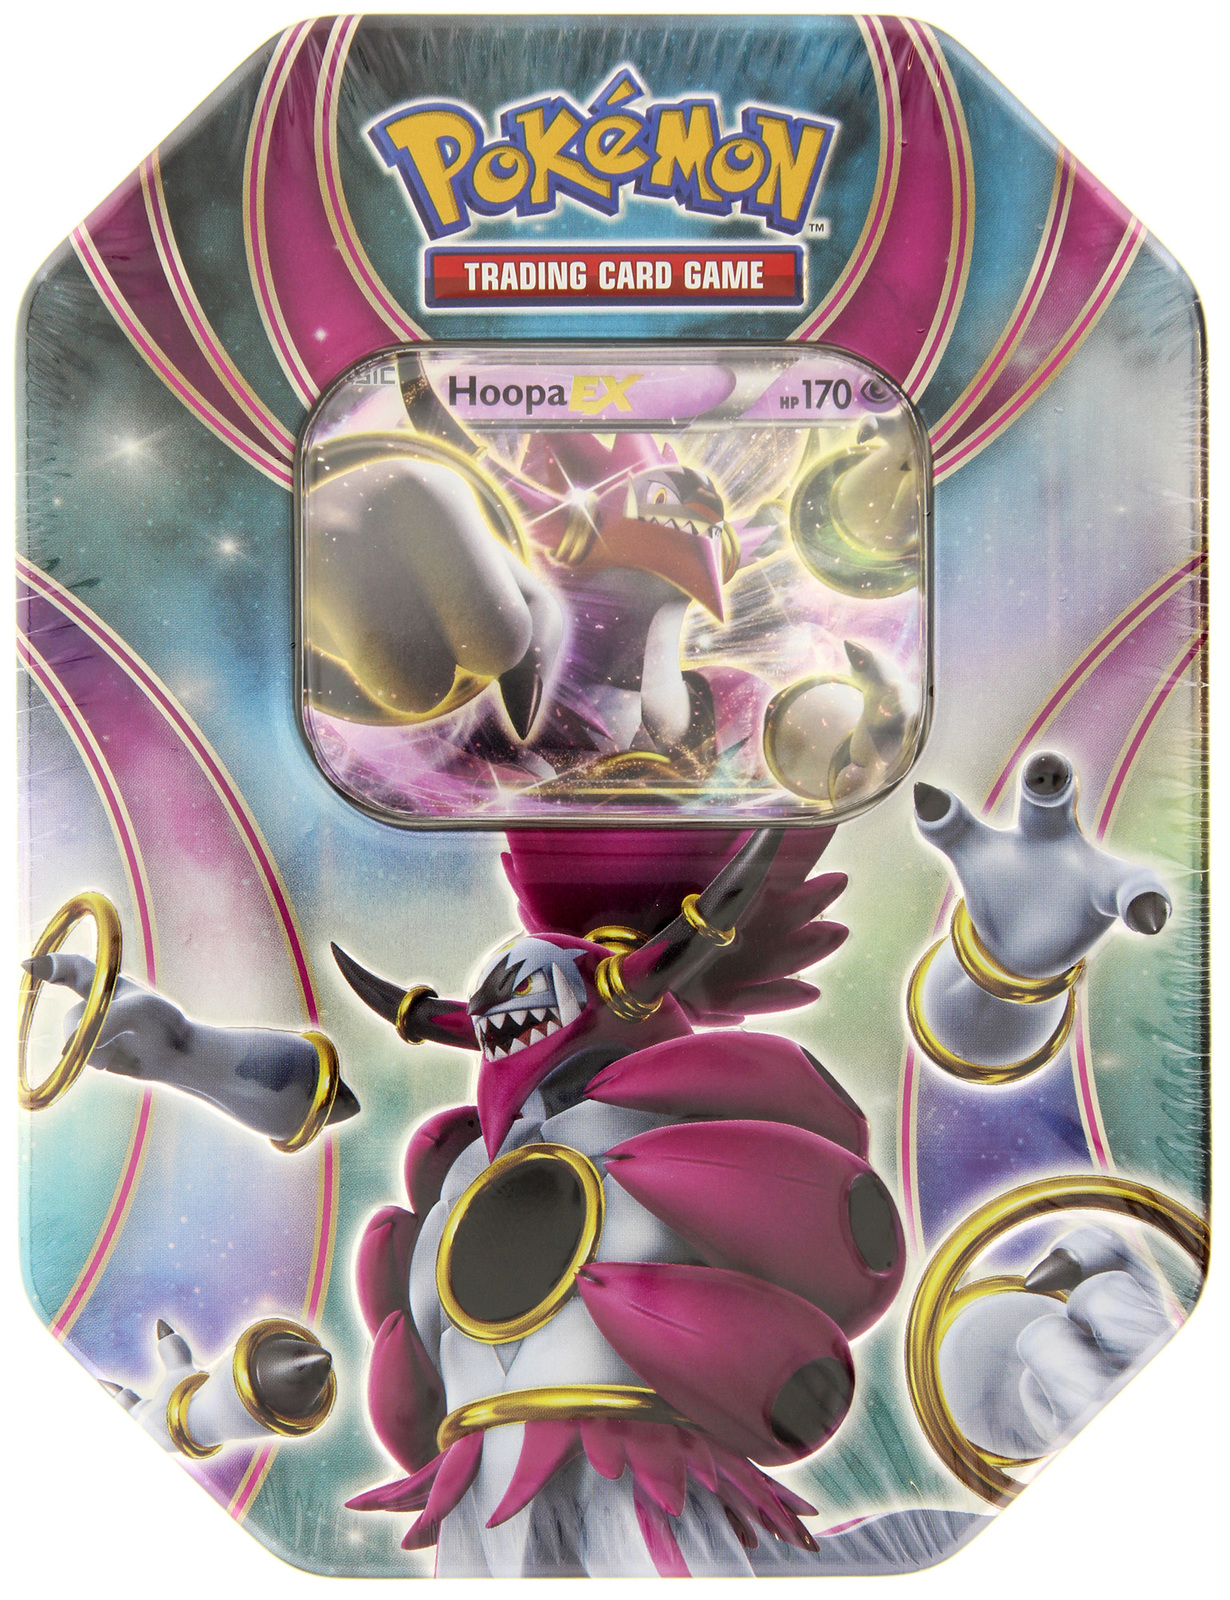 Pokemon TCG Hoopa EX Tin image